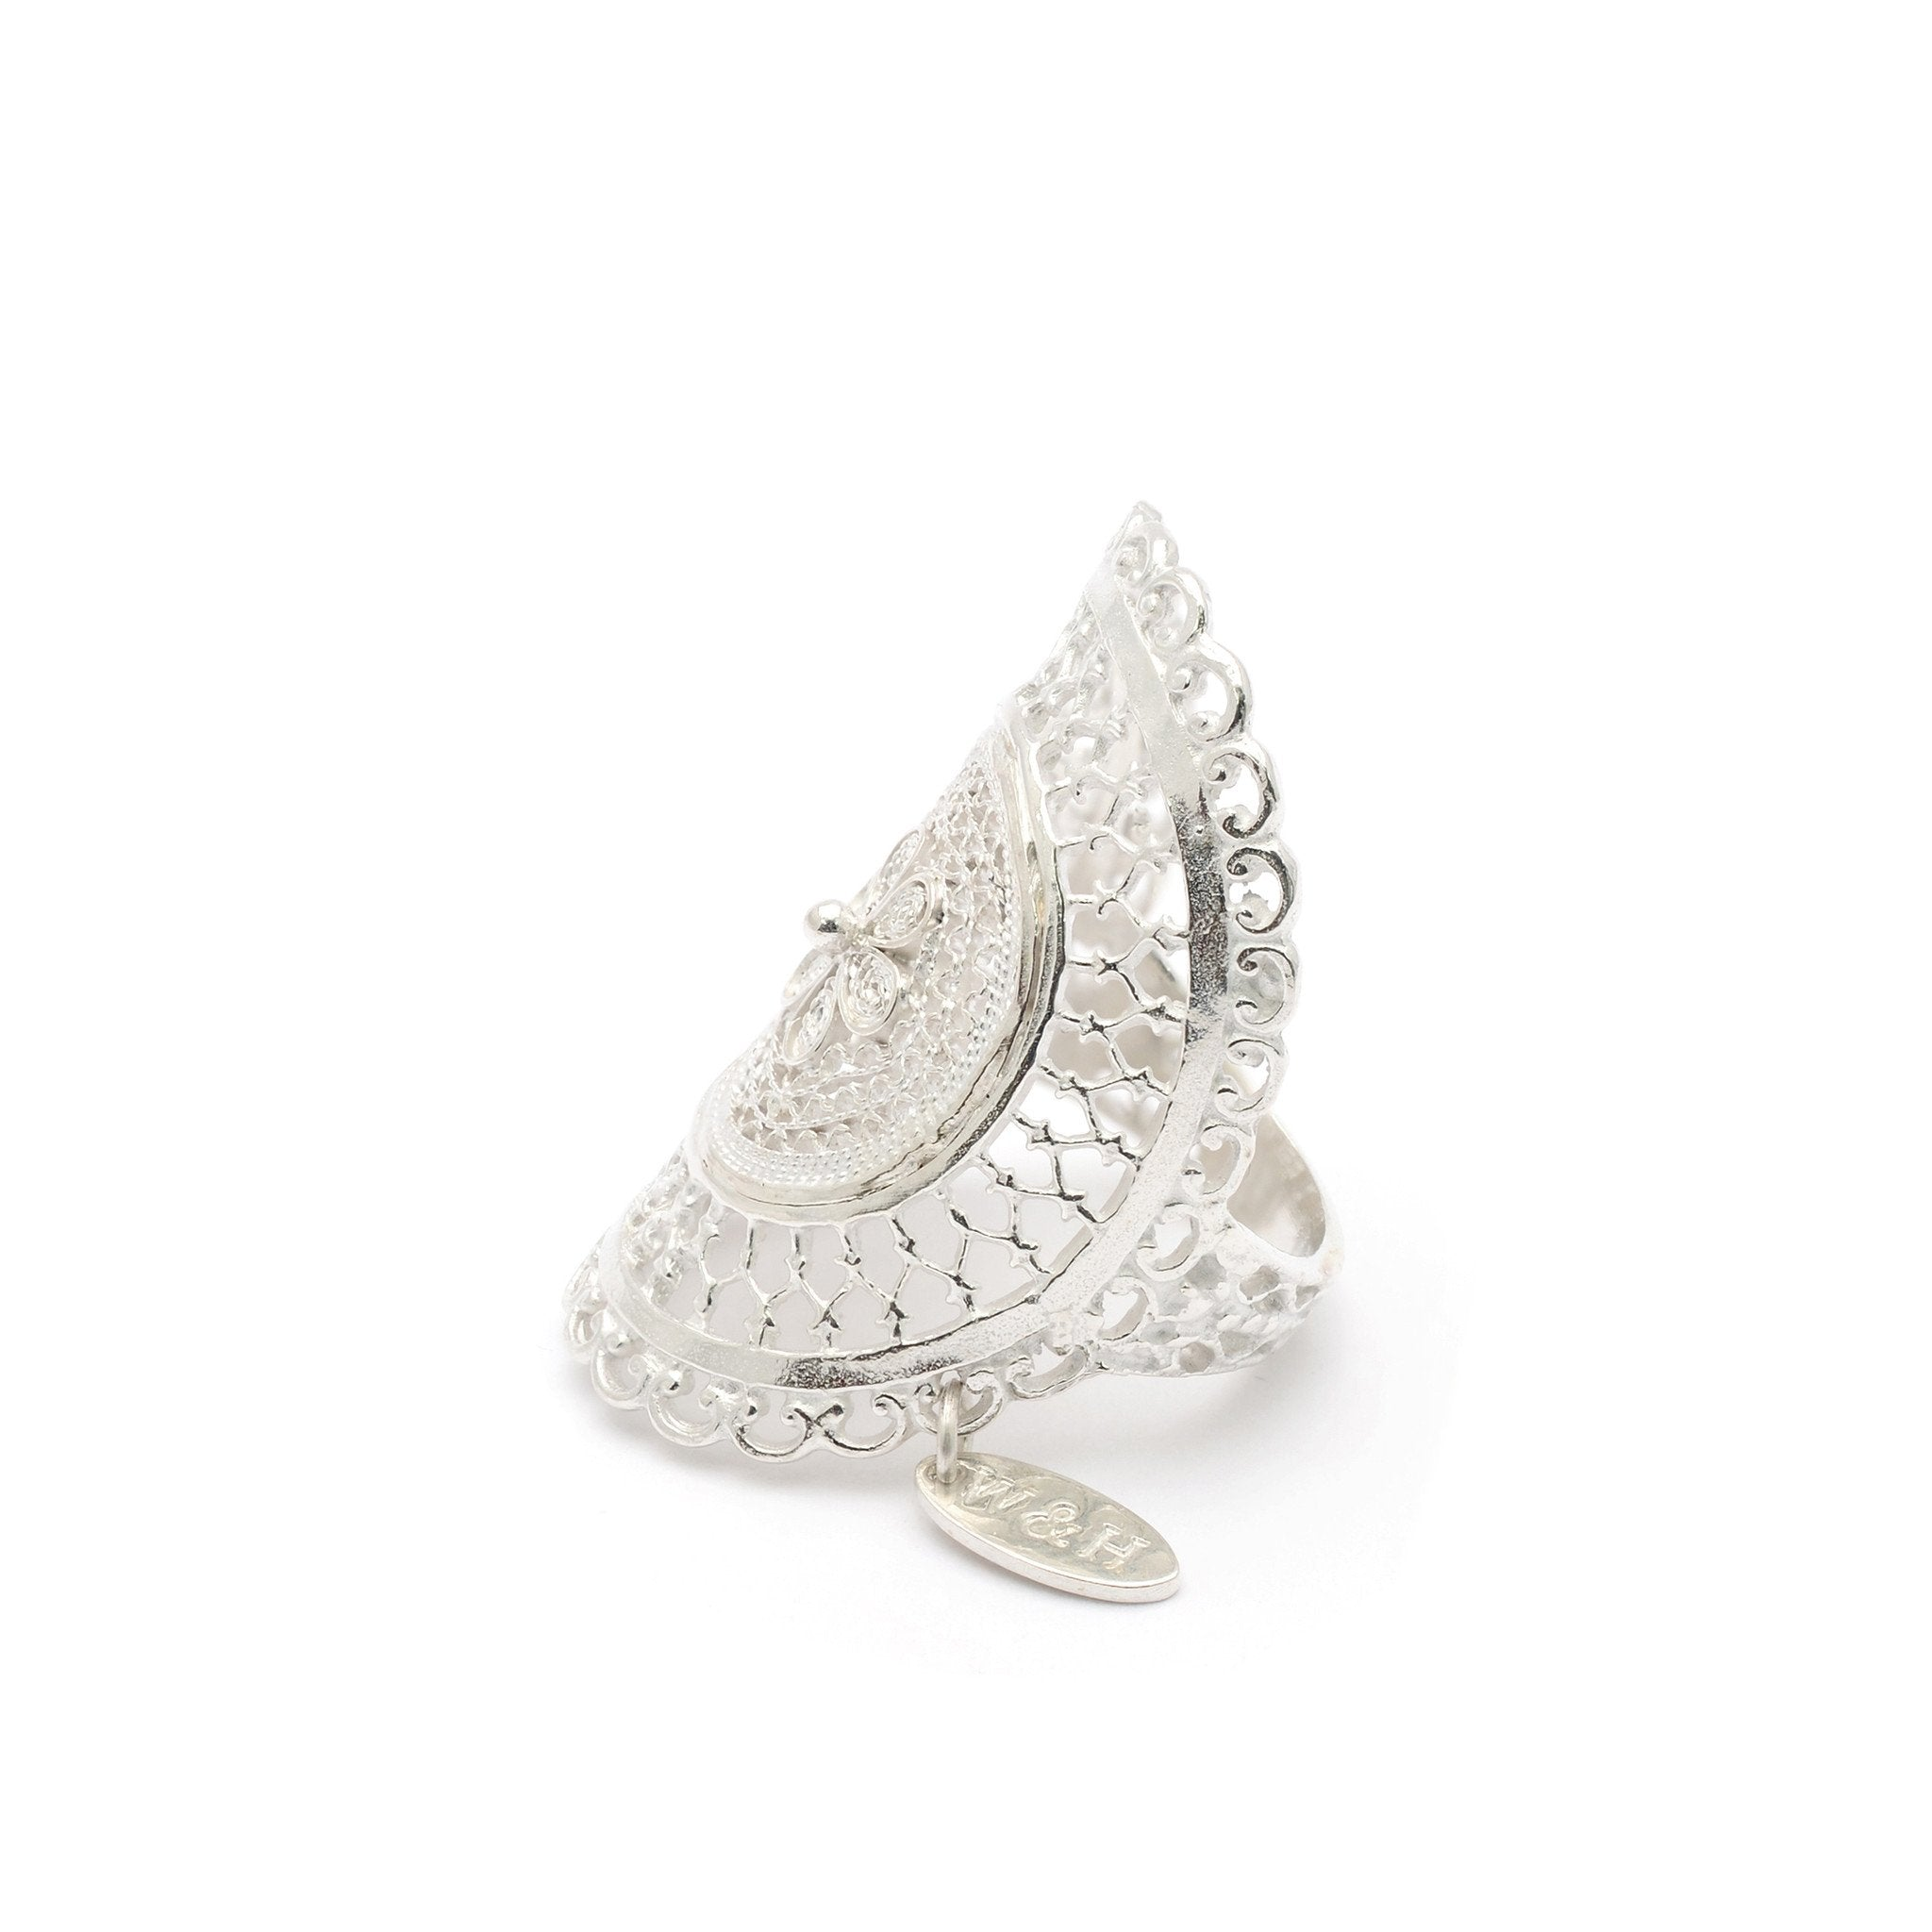 Wouters & Hendrix - Filigree ring